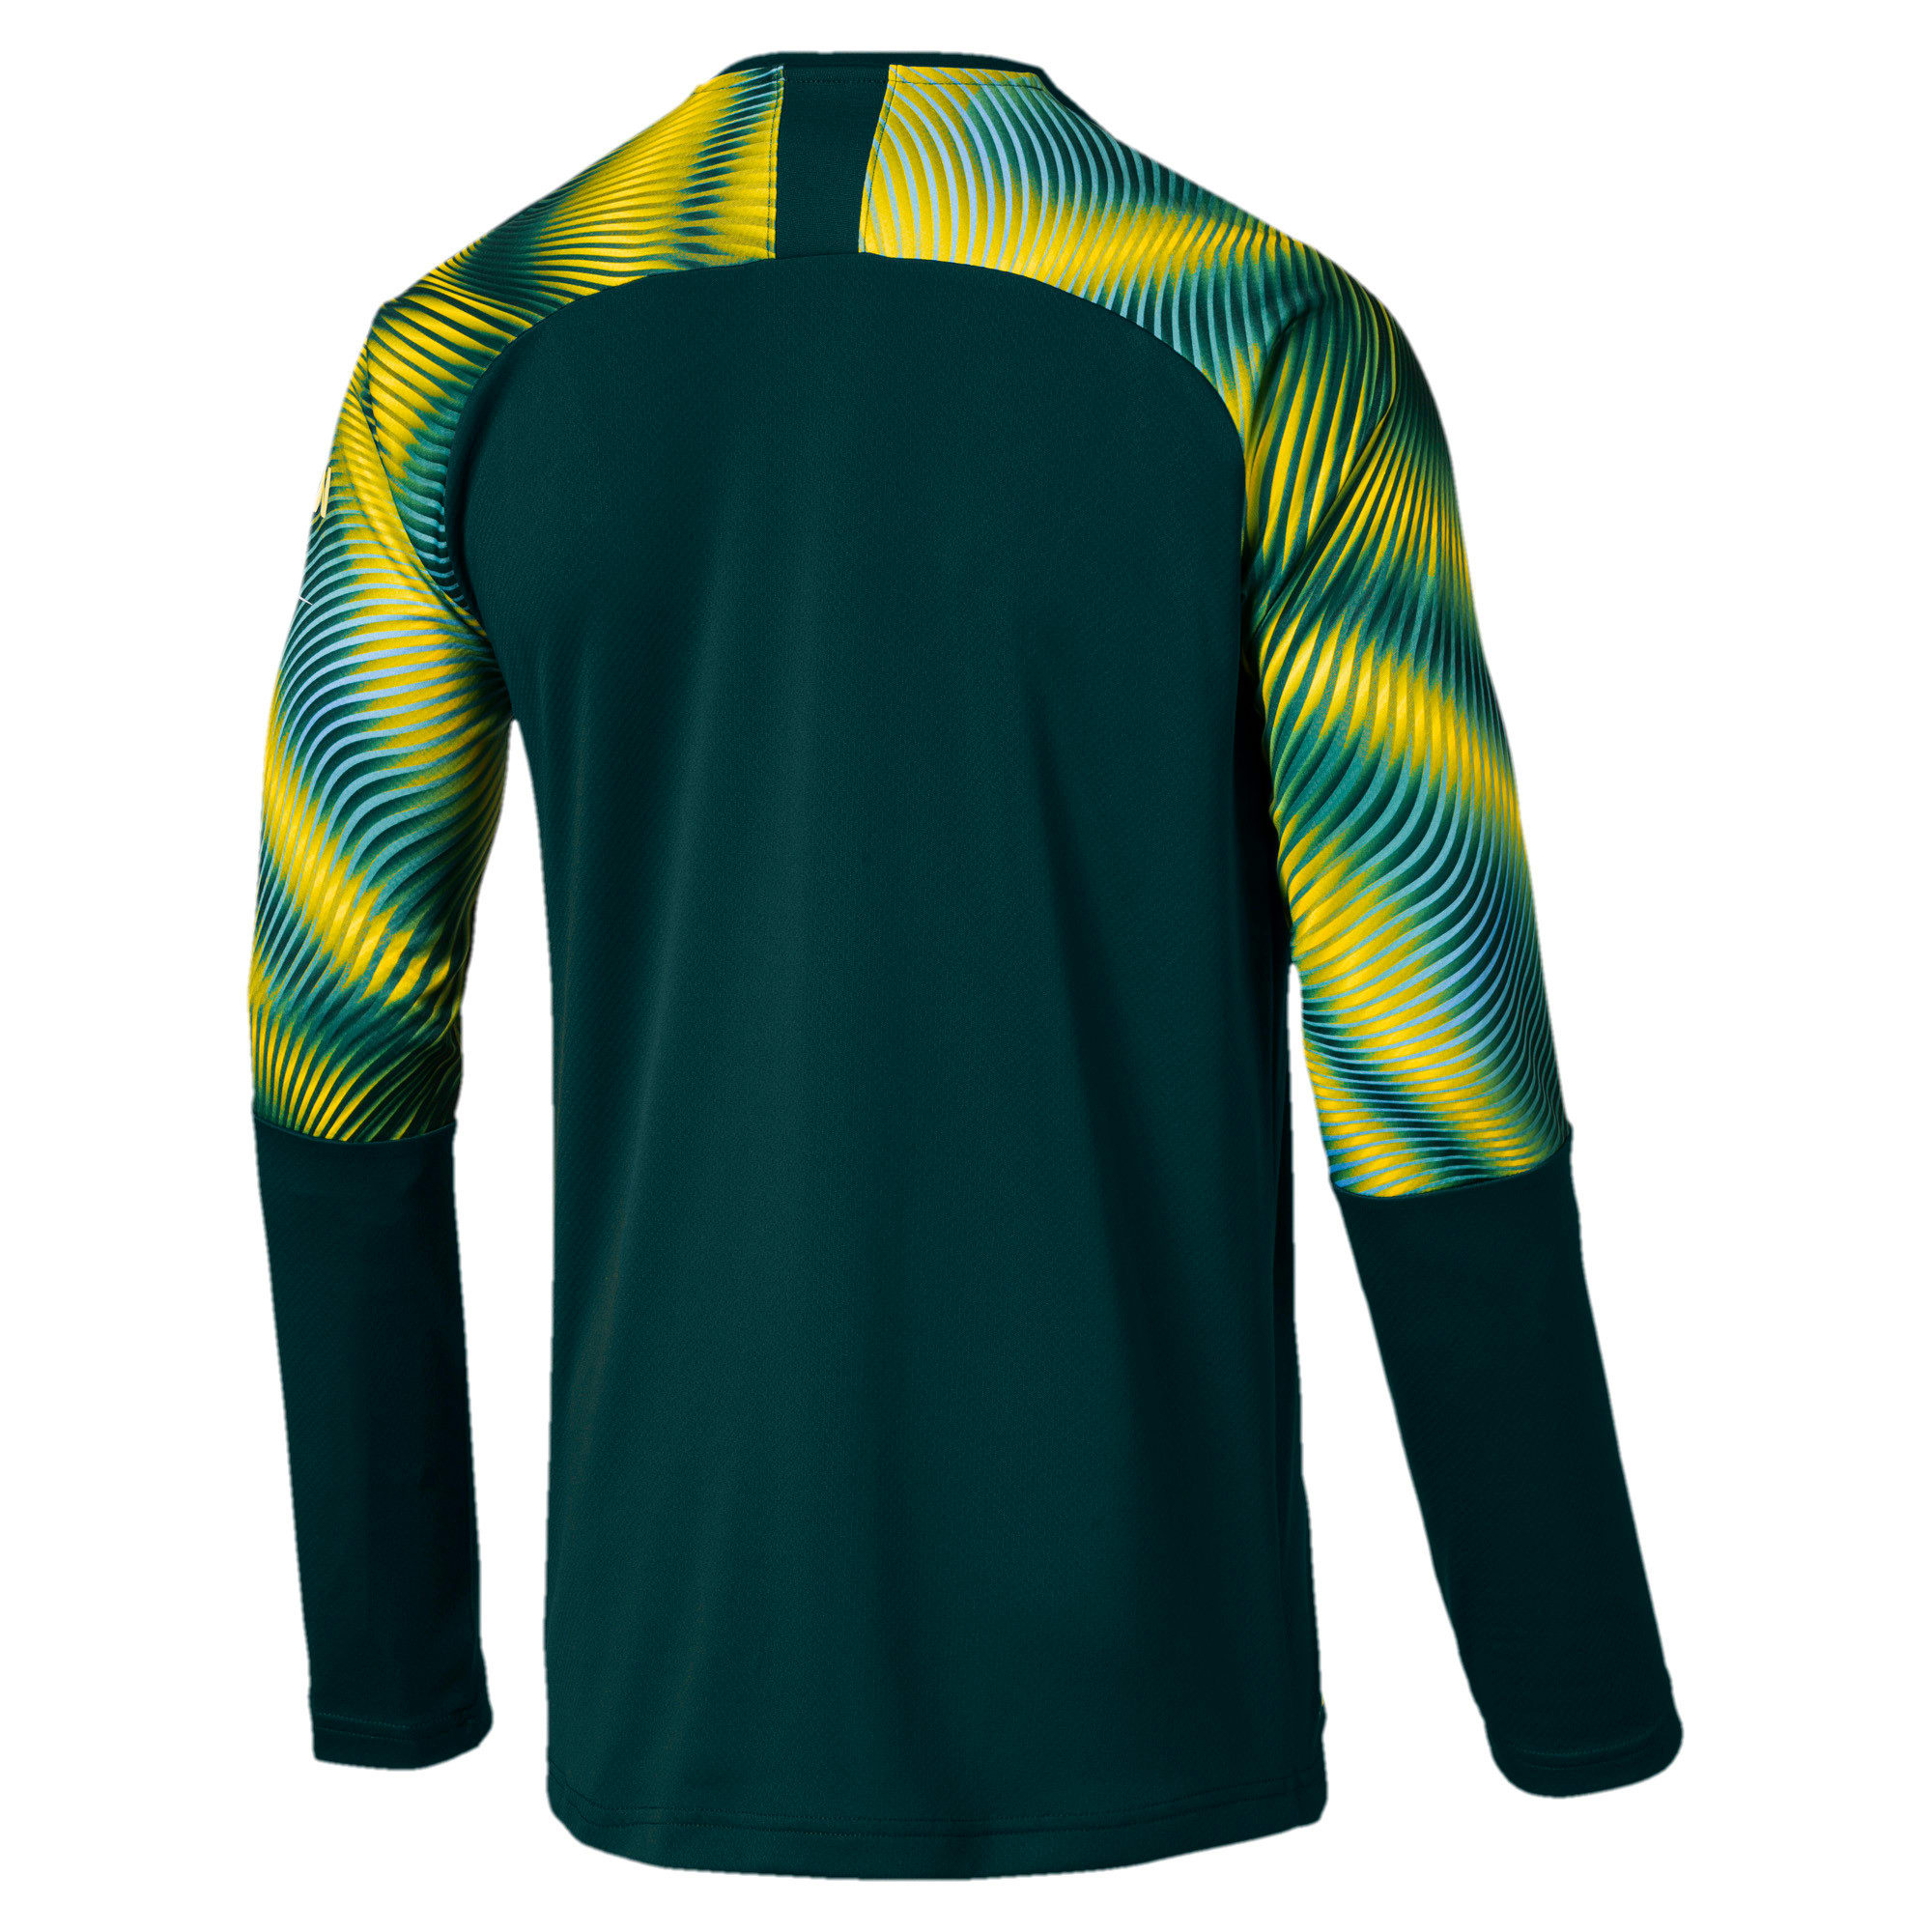 Anteprima 2 di Man City Men's Replica Goalkeeper Jersey, Ponderosa Pine-Cyber Yellow, medio